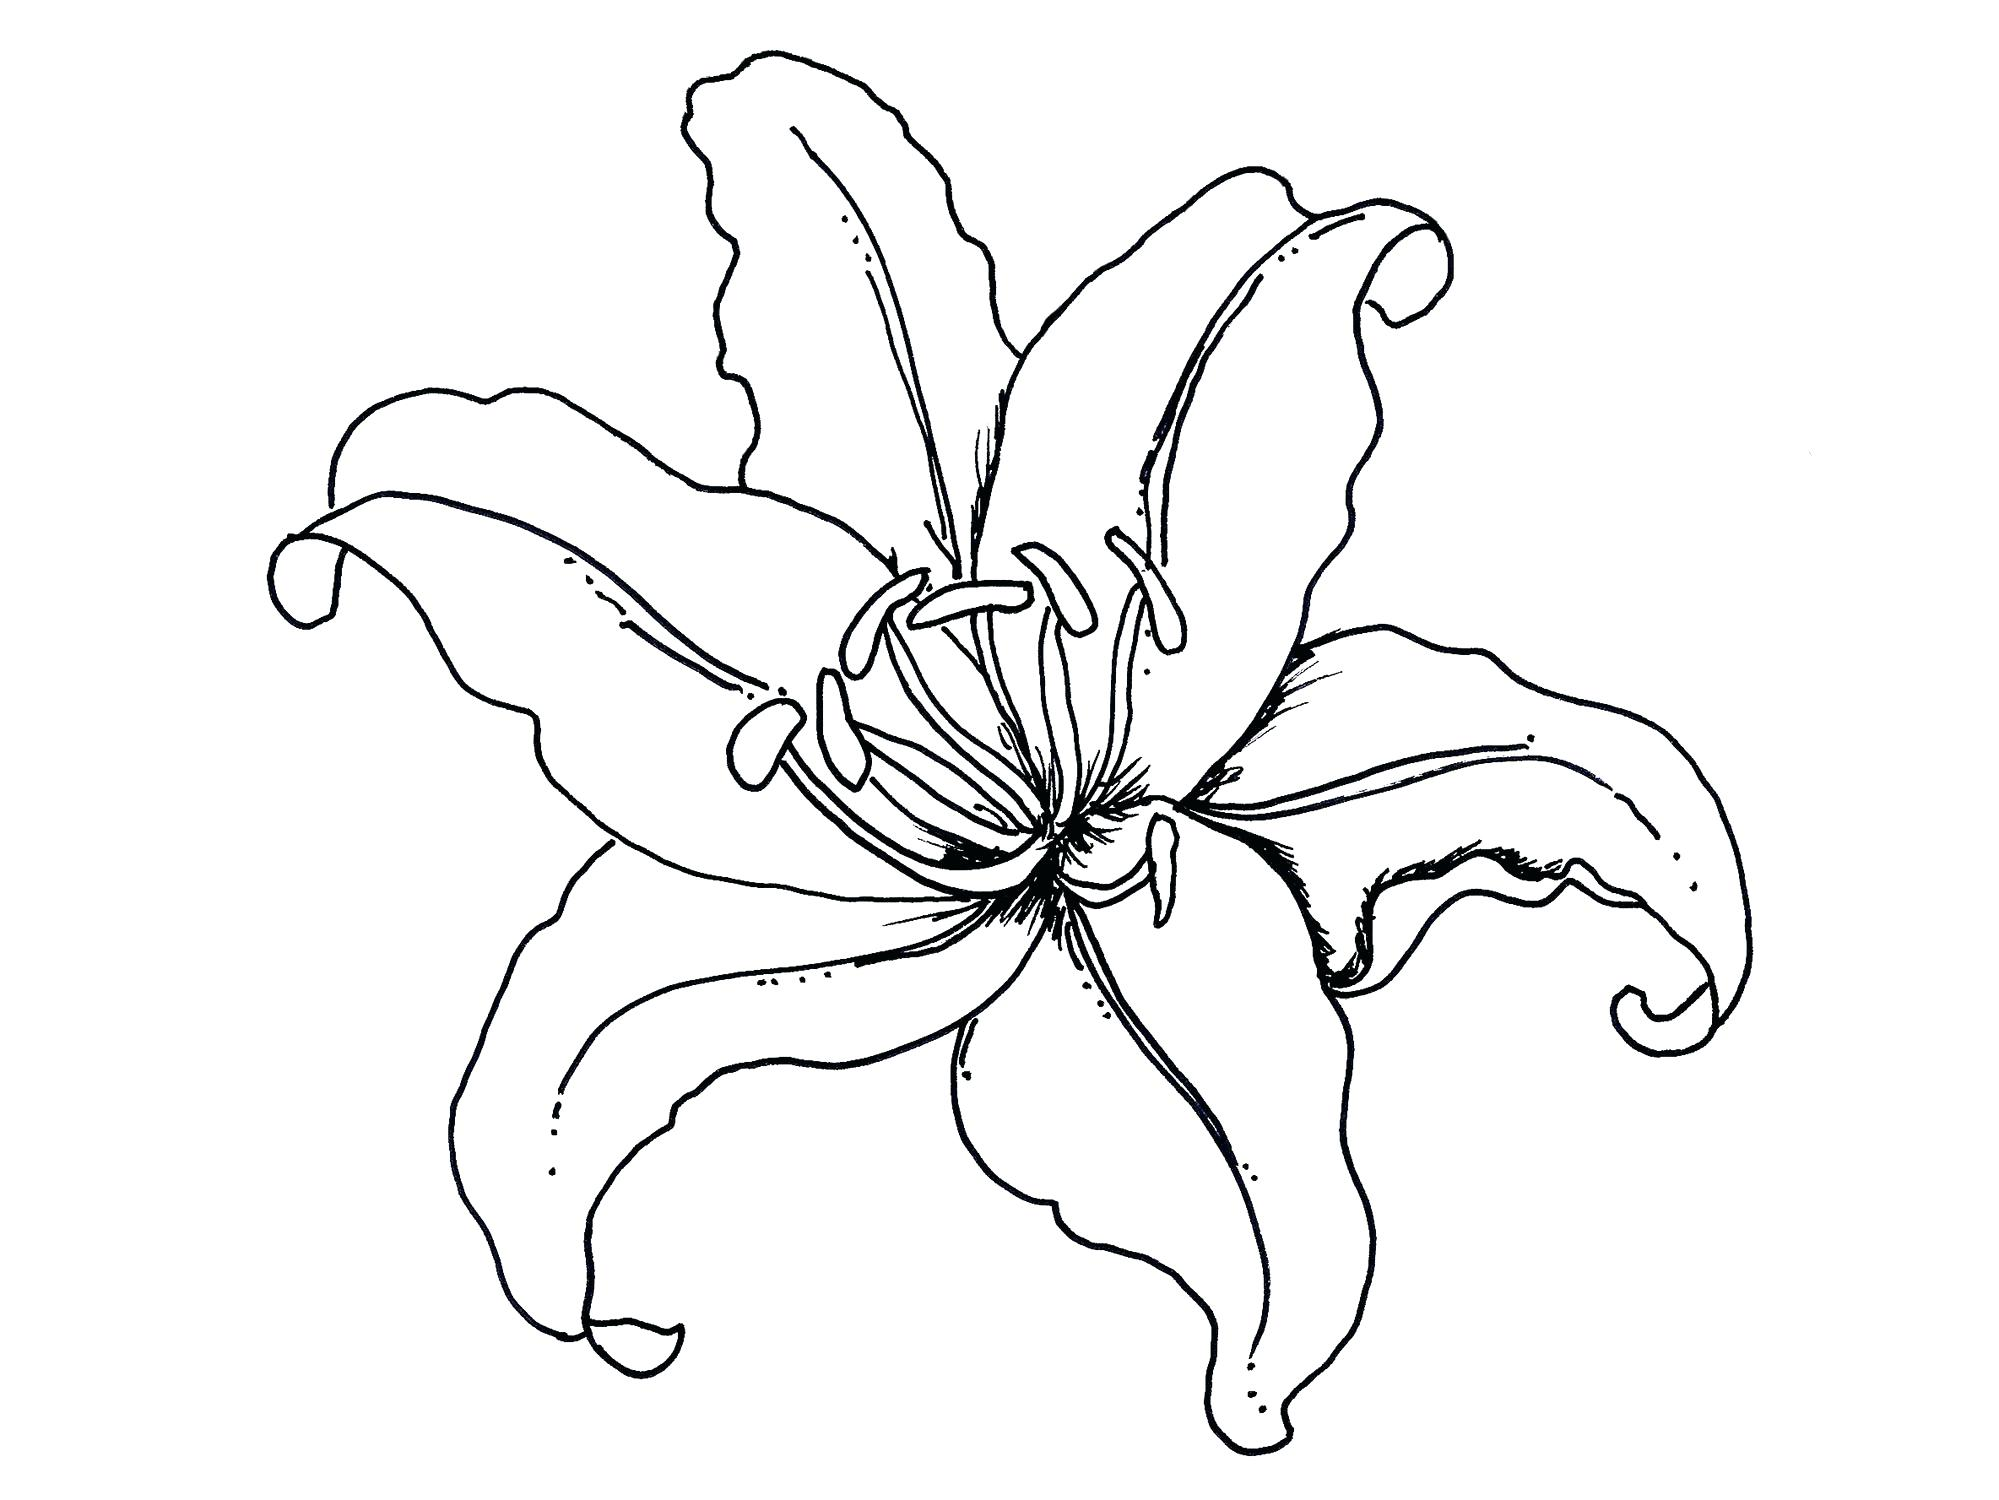 1999x1500 Coloring Pages Christmas Free Lily Pad Flower Cartoon Bees Make